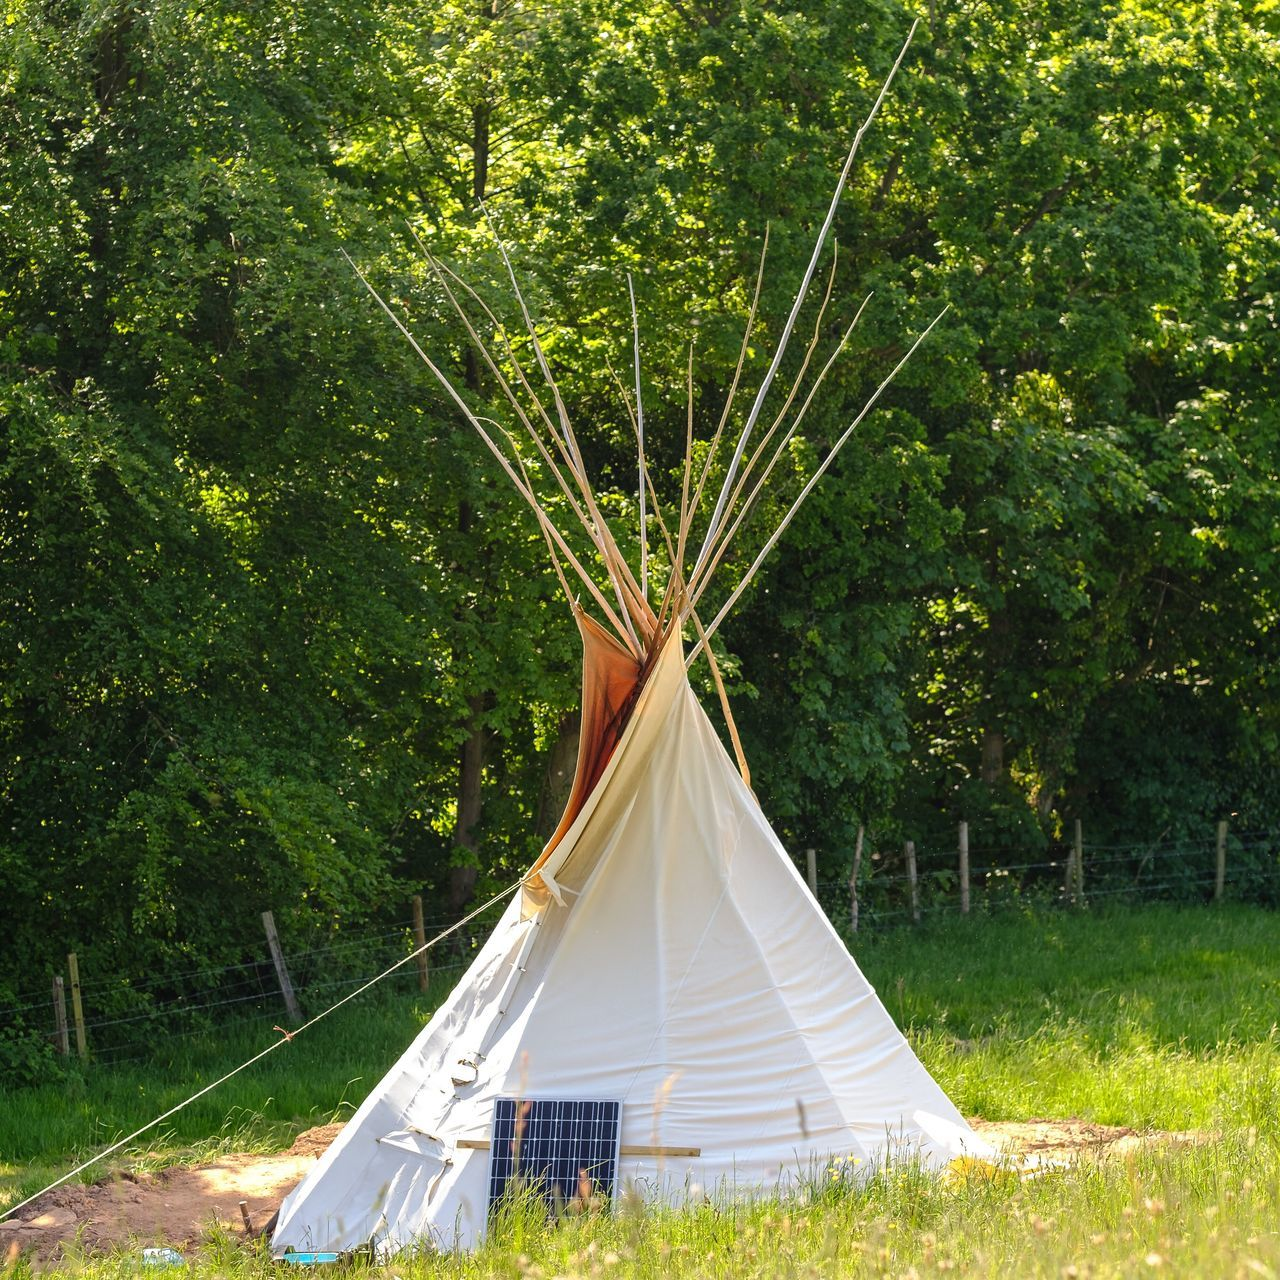 Tepee and solar technology in the Derbyshire village of Little Eaton